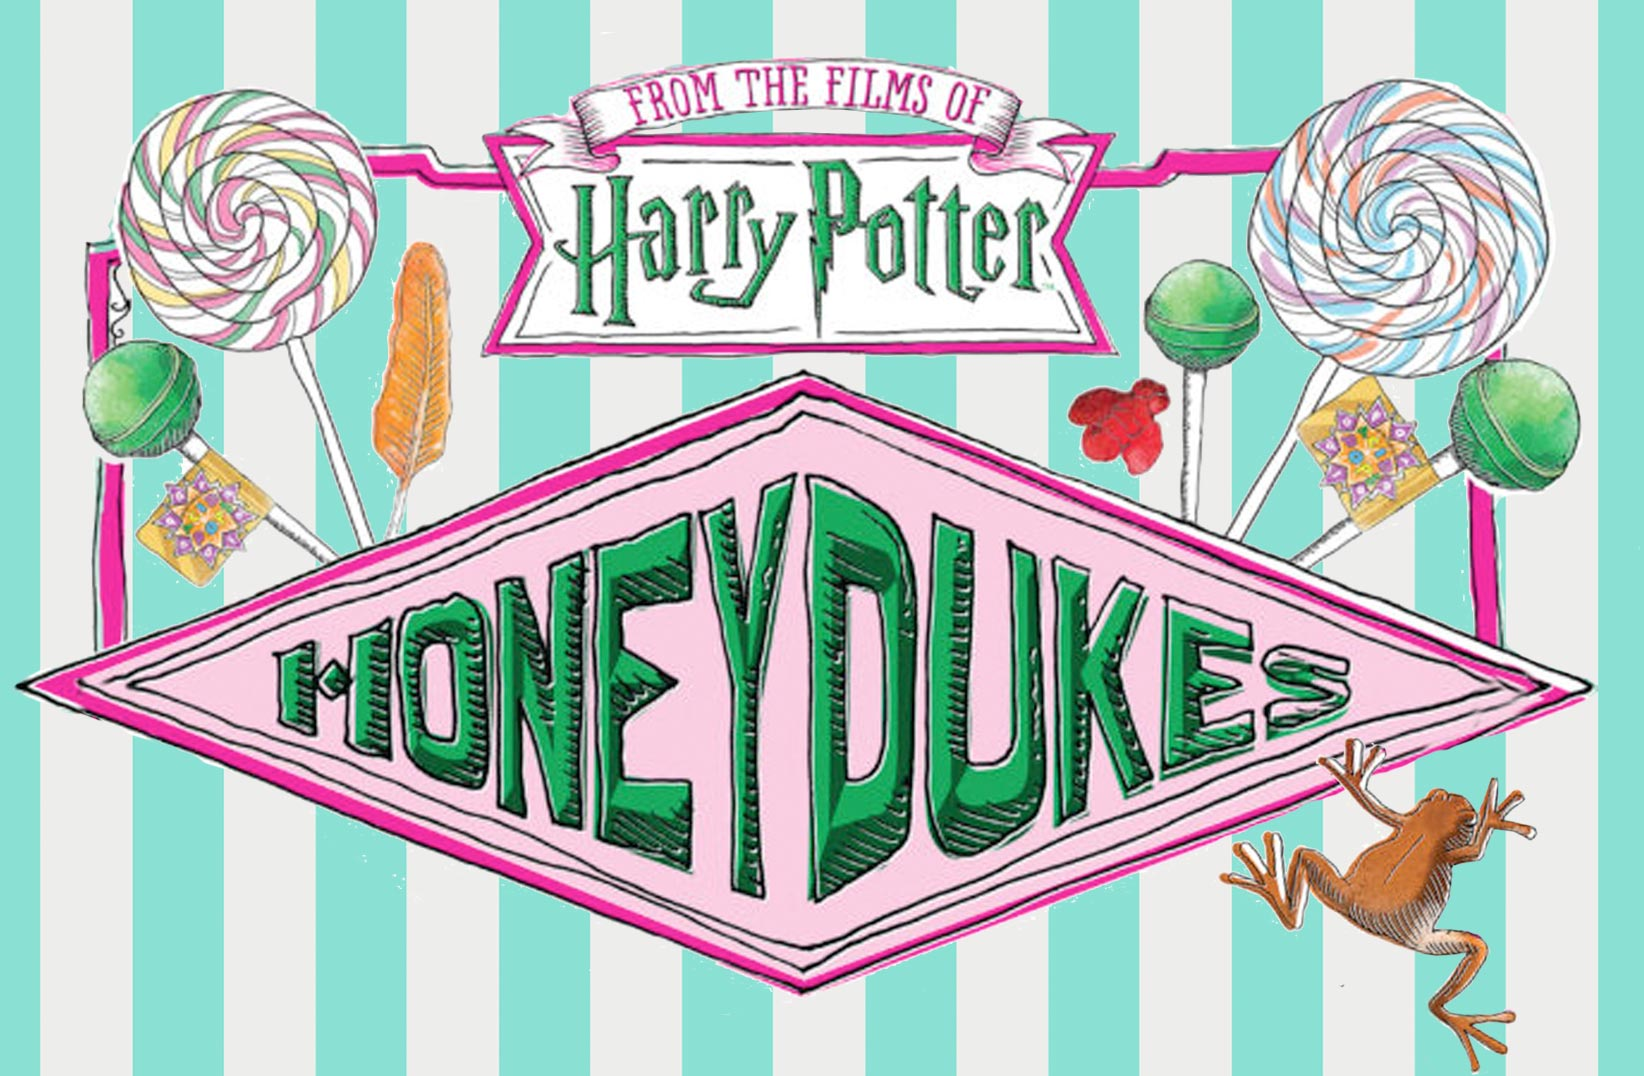 HONEYDUKES SWEET SHOP